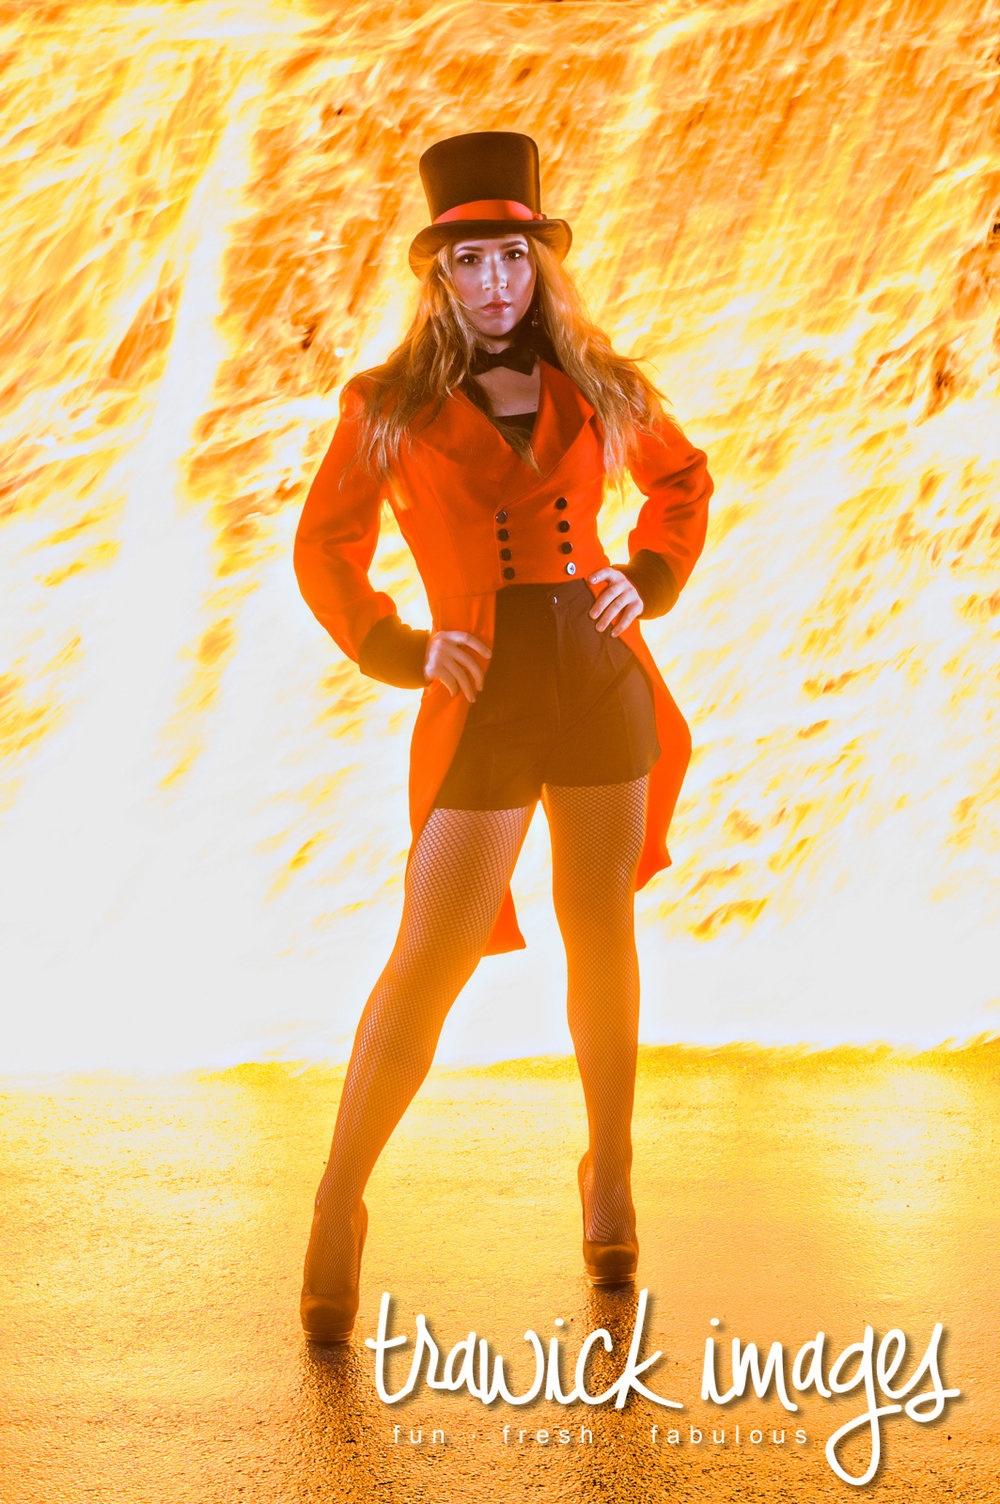 Avery rocking a pose while feeling the real heat from the Wall of Fire background.